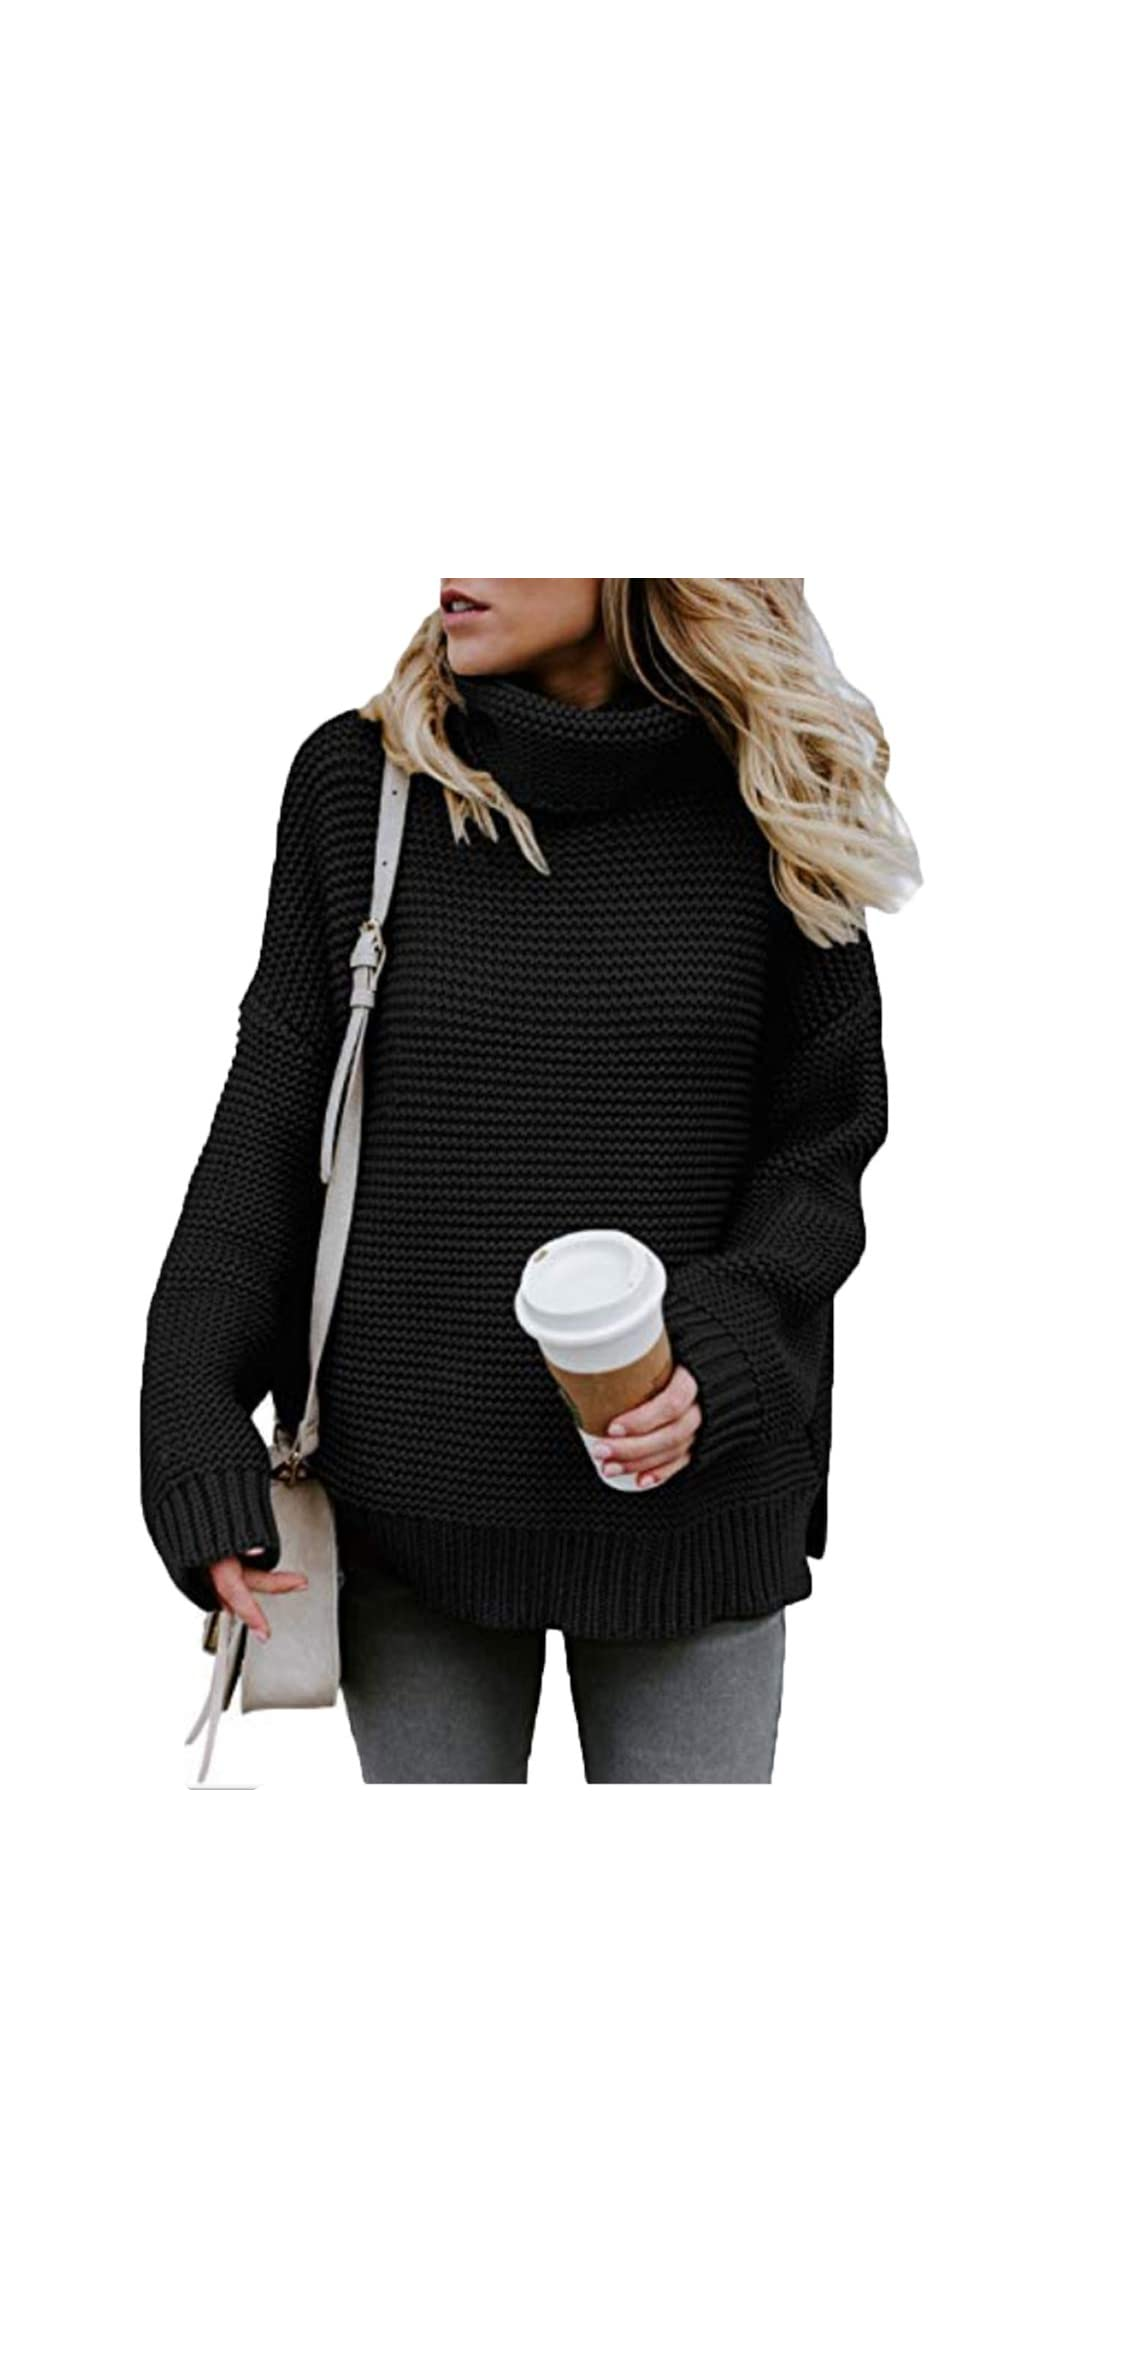 S-xl Women Turtleneck Long Sleeve Chunky Knit Casual